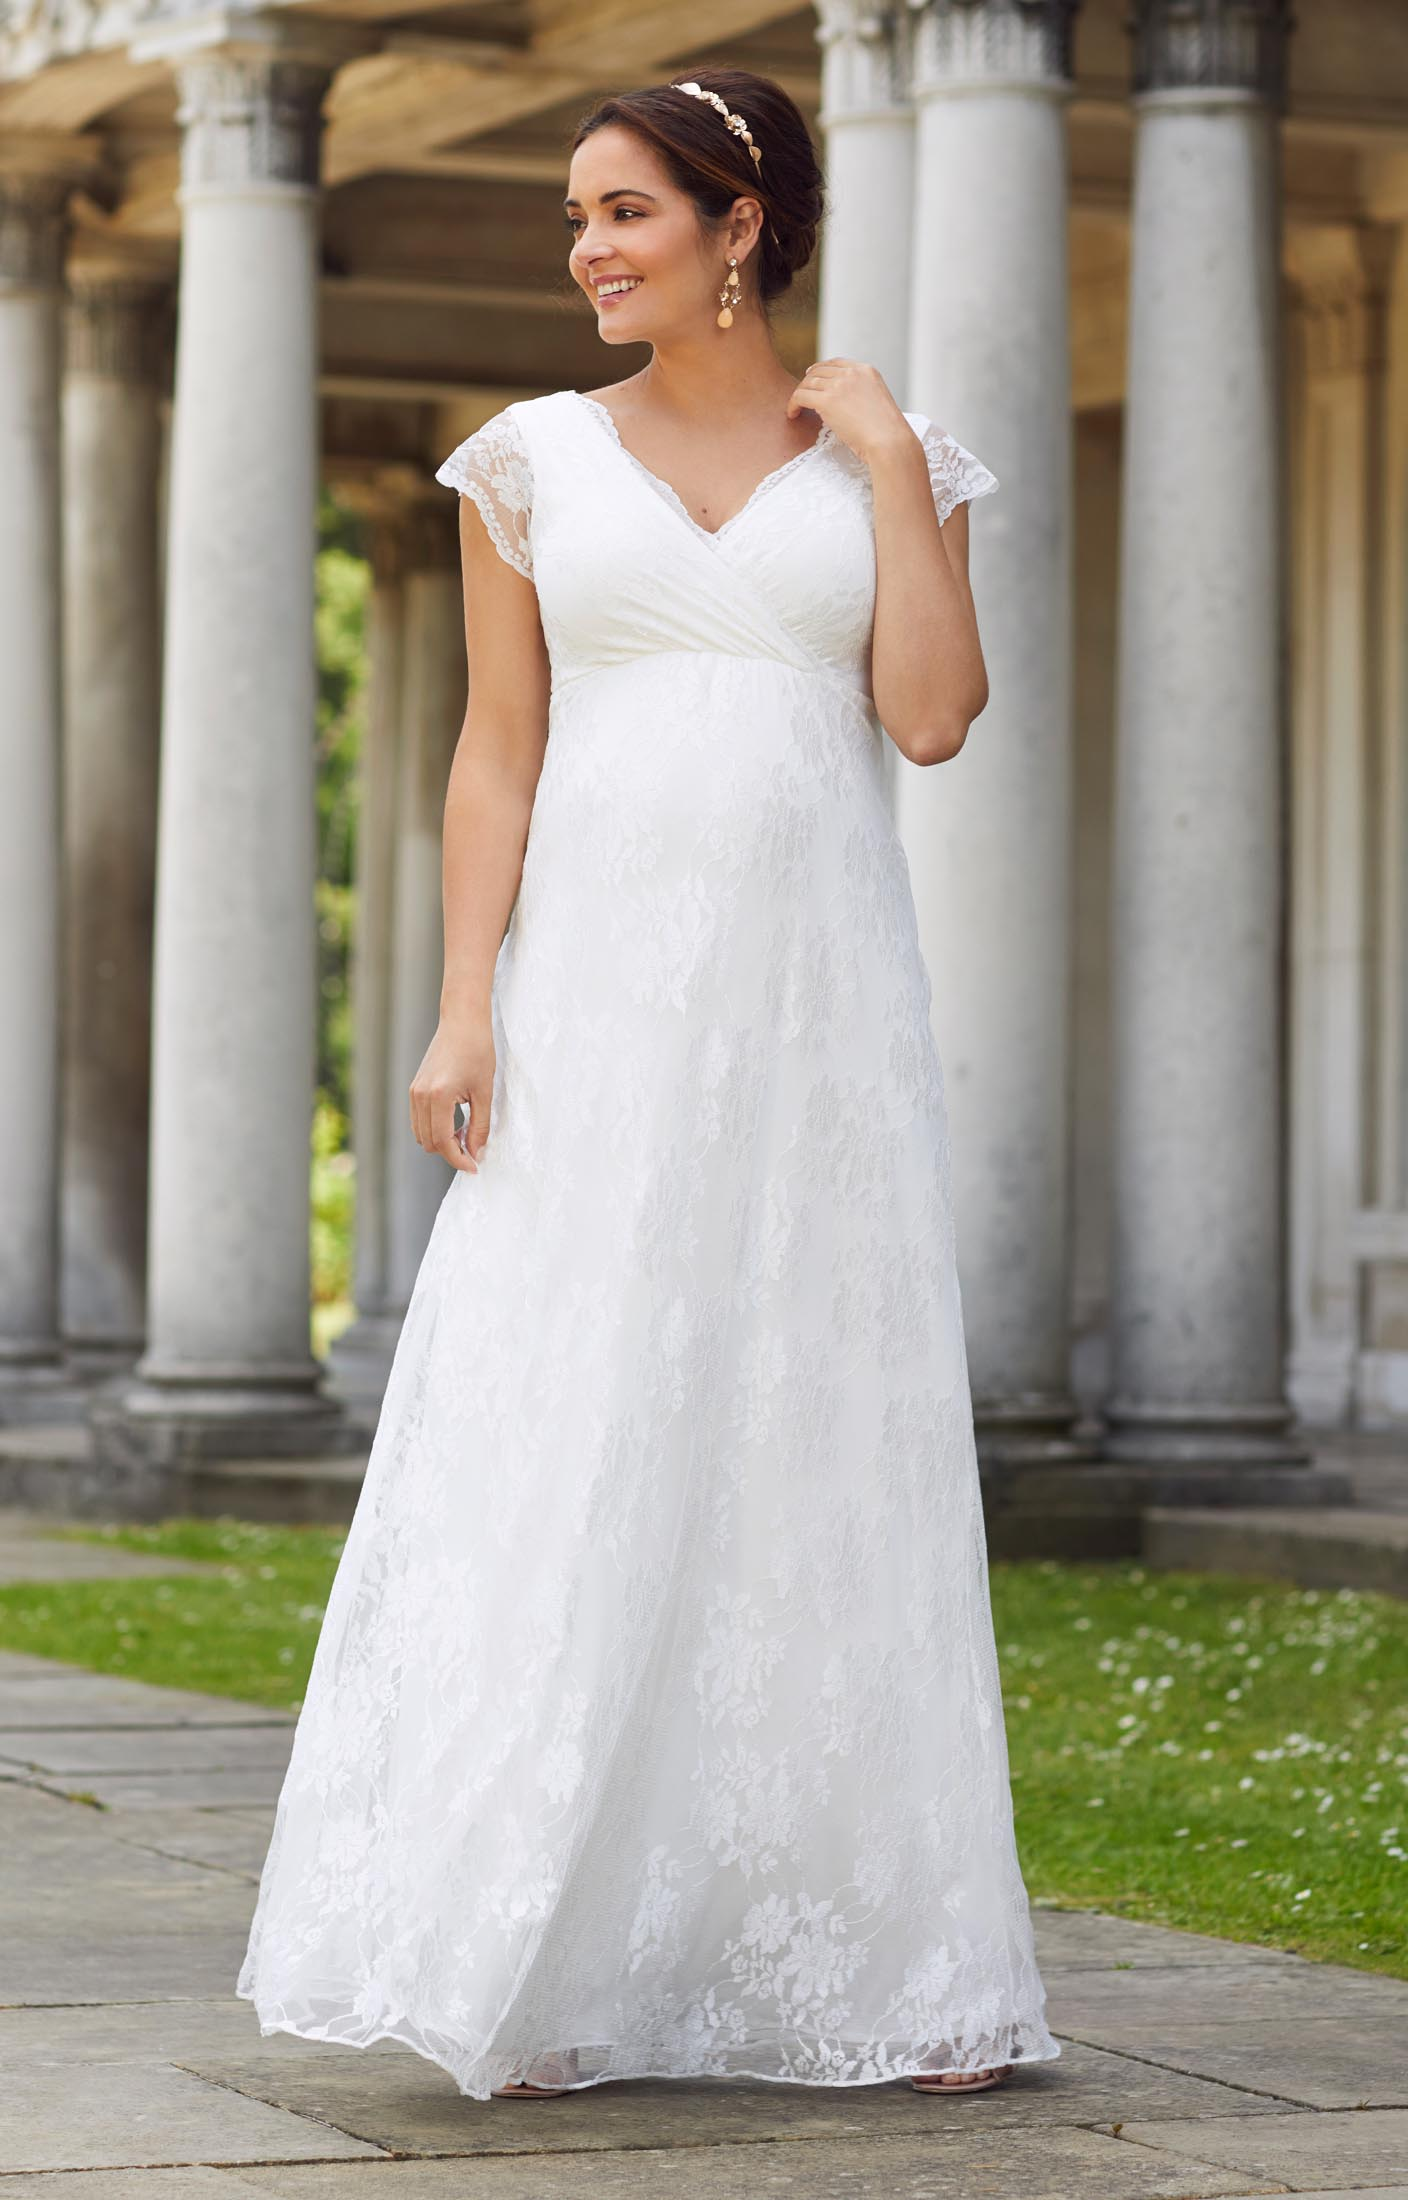 Eden Maternity Wedding Gown Long Ivory Dream  Maternity Wedding Dresses Evening Wear and